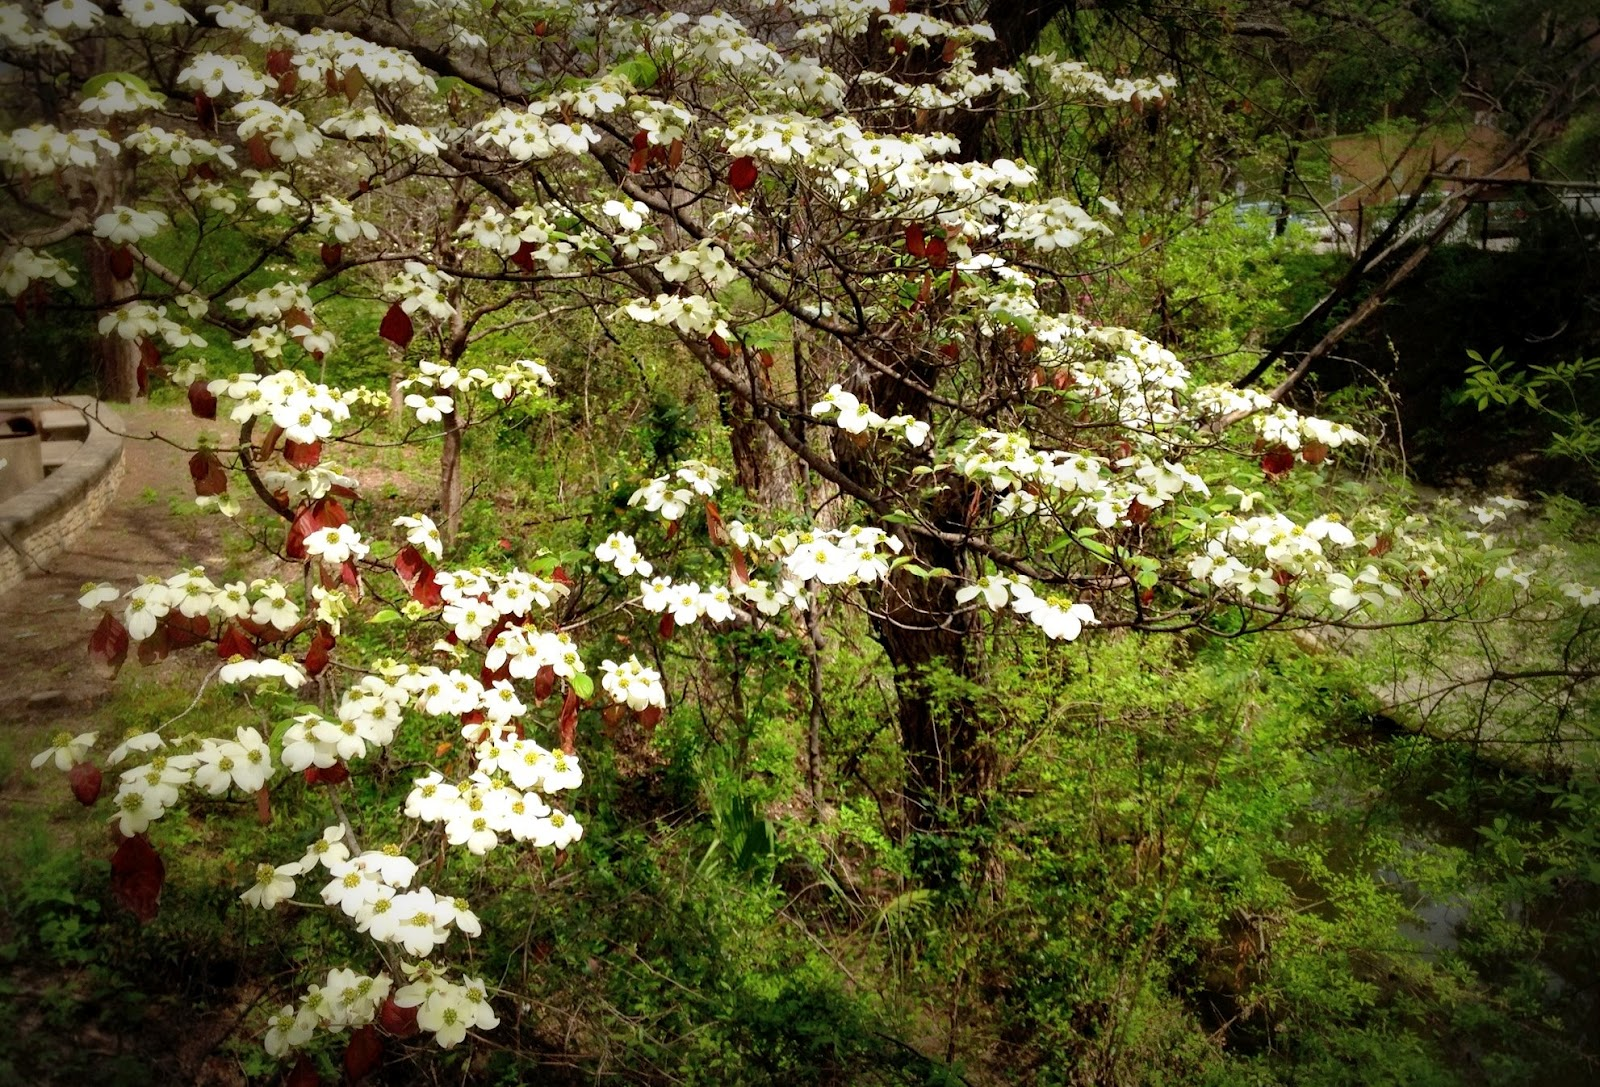 The Grackle: Flowering Dogwood